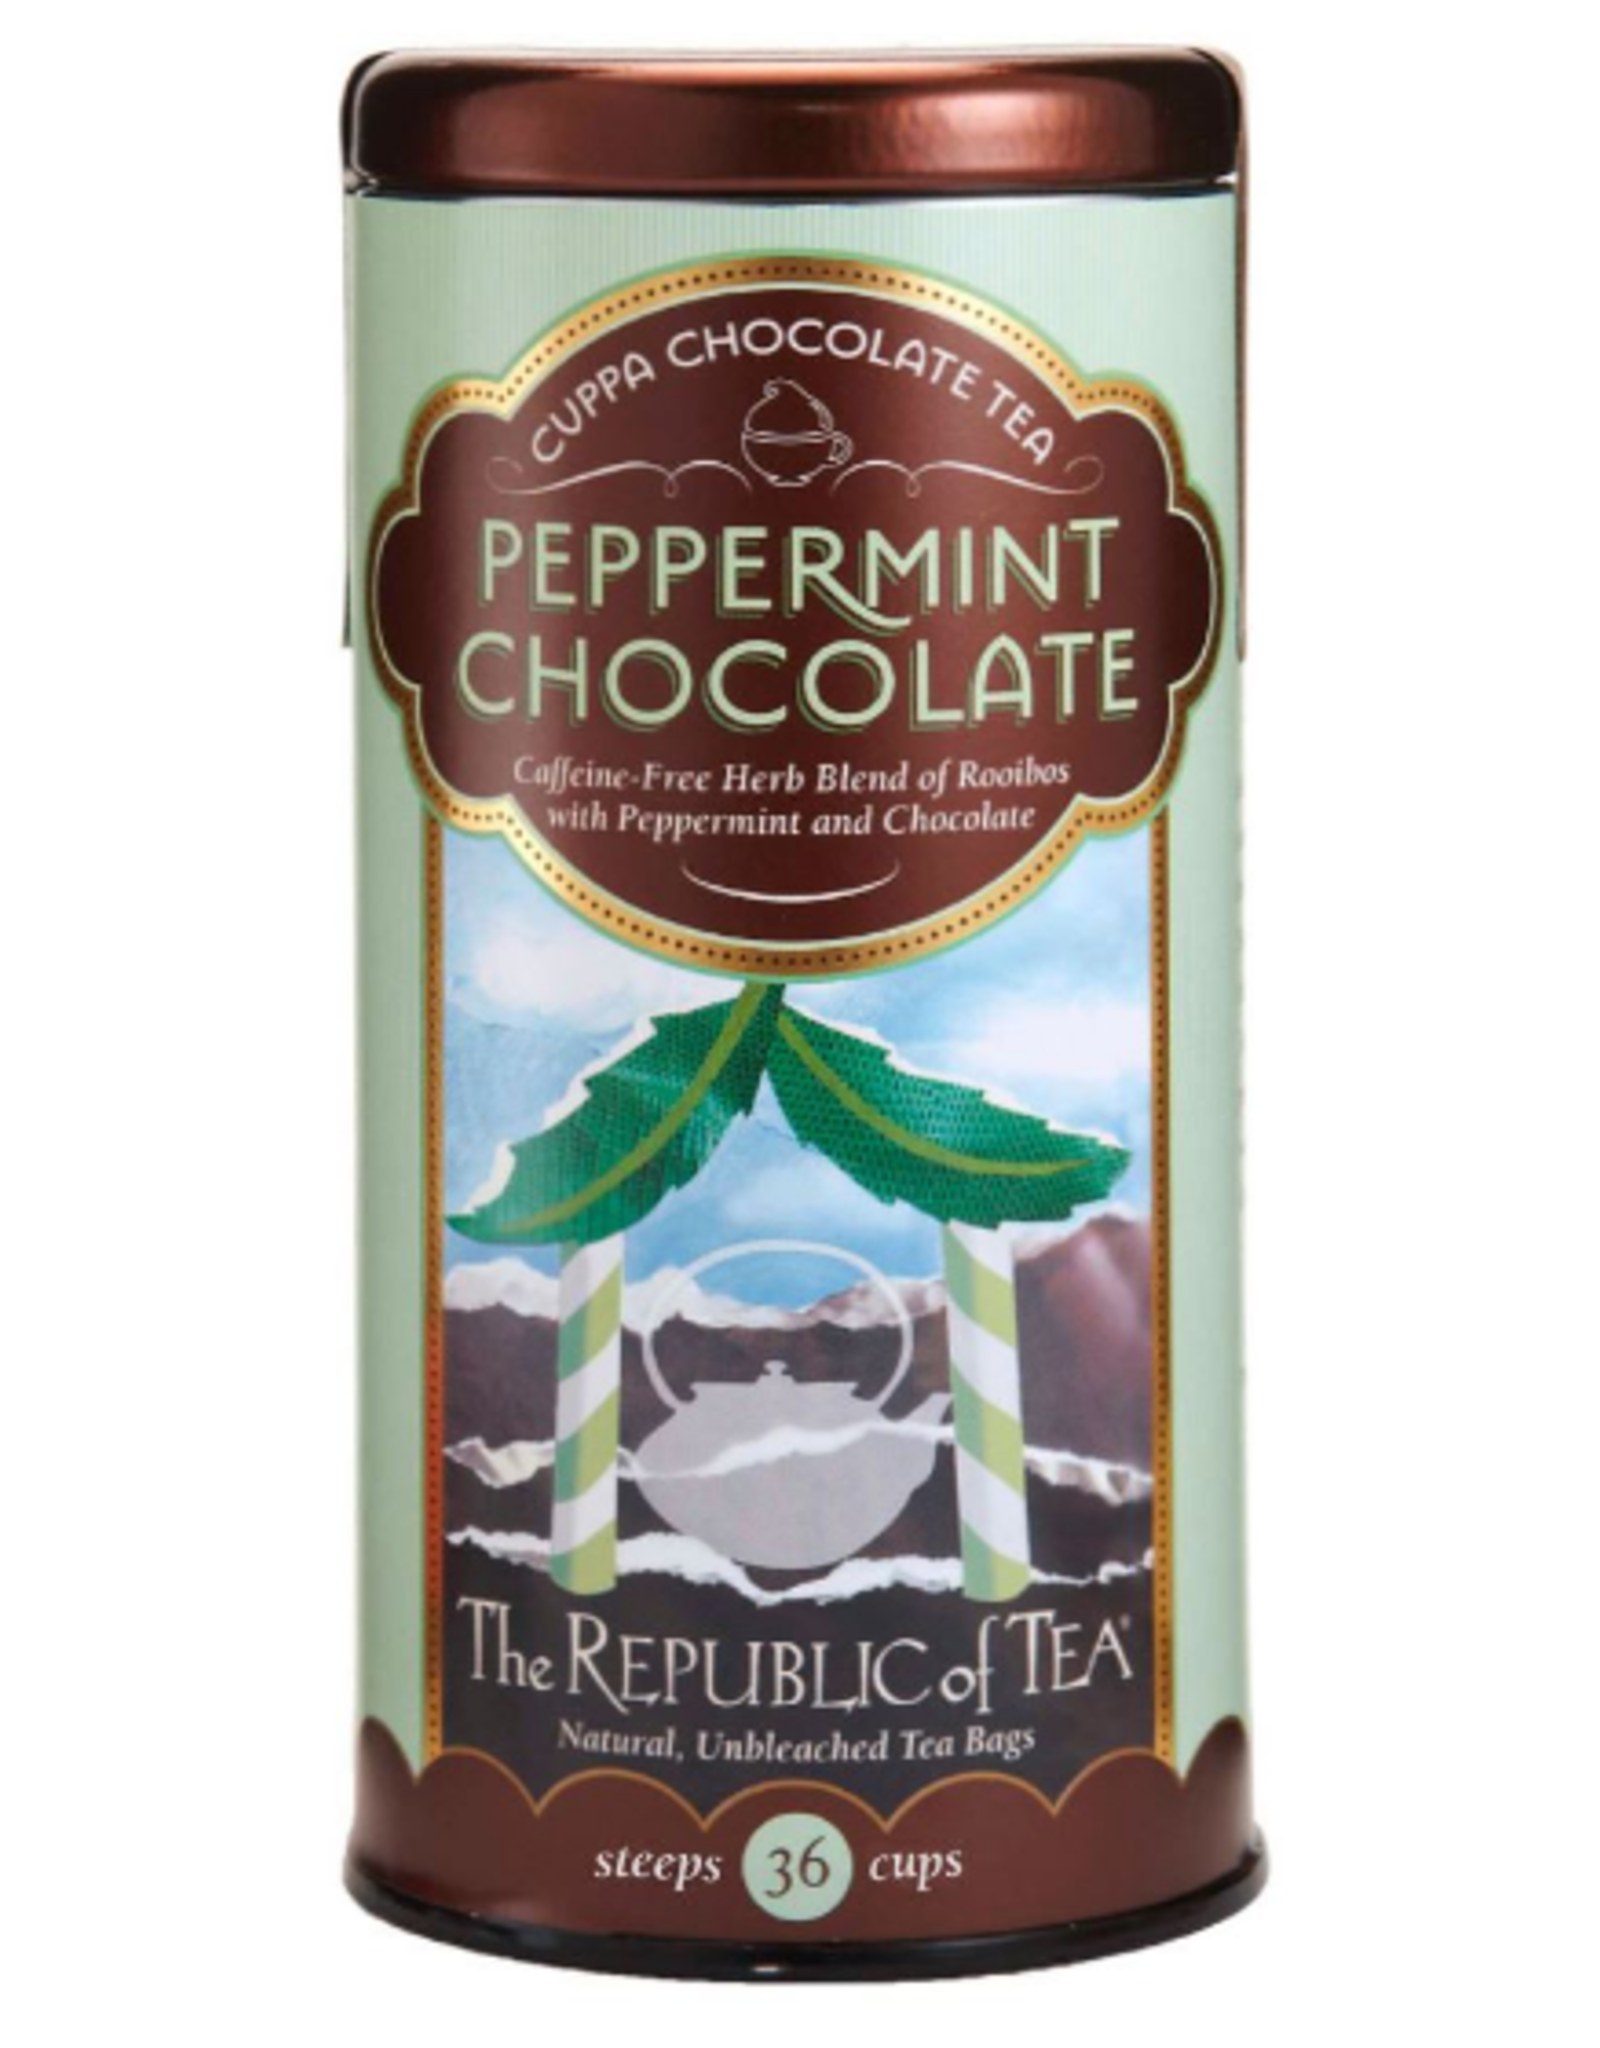 The Republic of Tea Peppermint Chocolate Red Tea, 36 Bag Tin